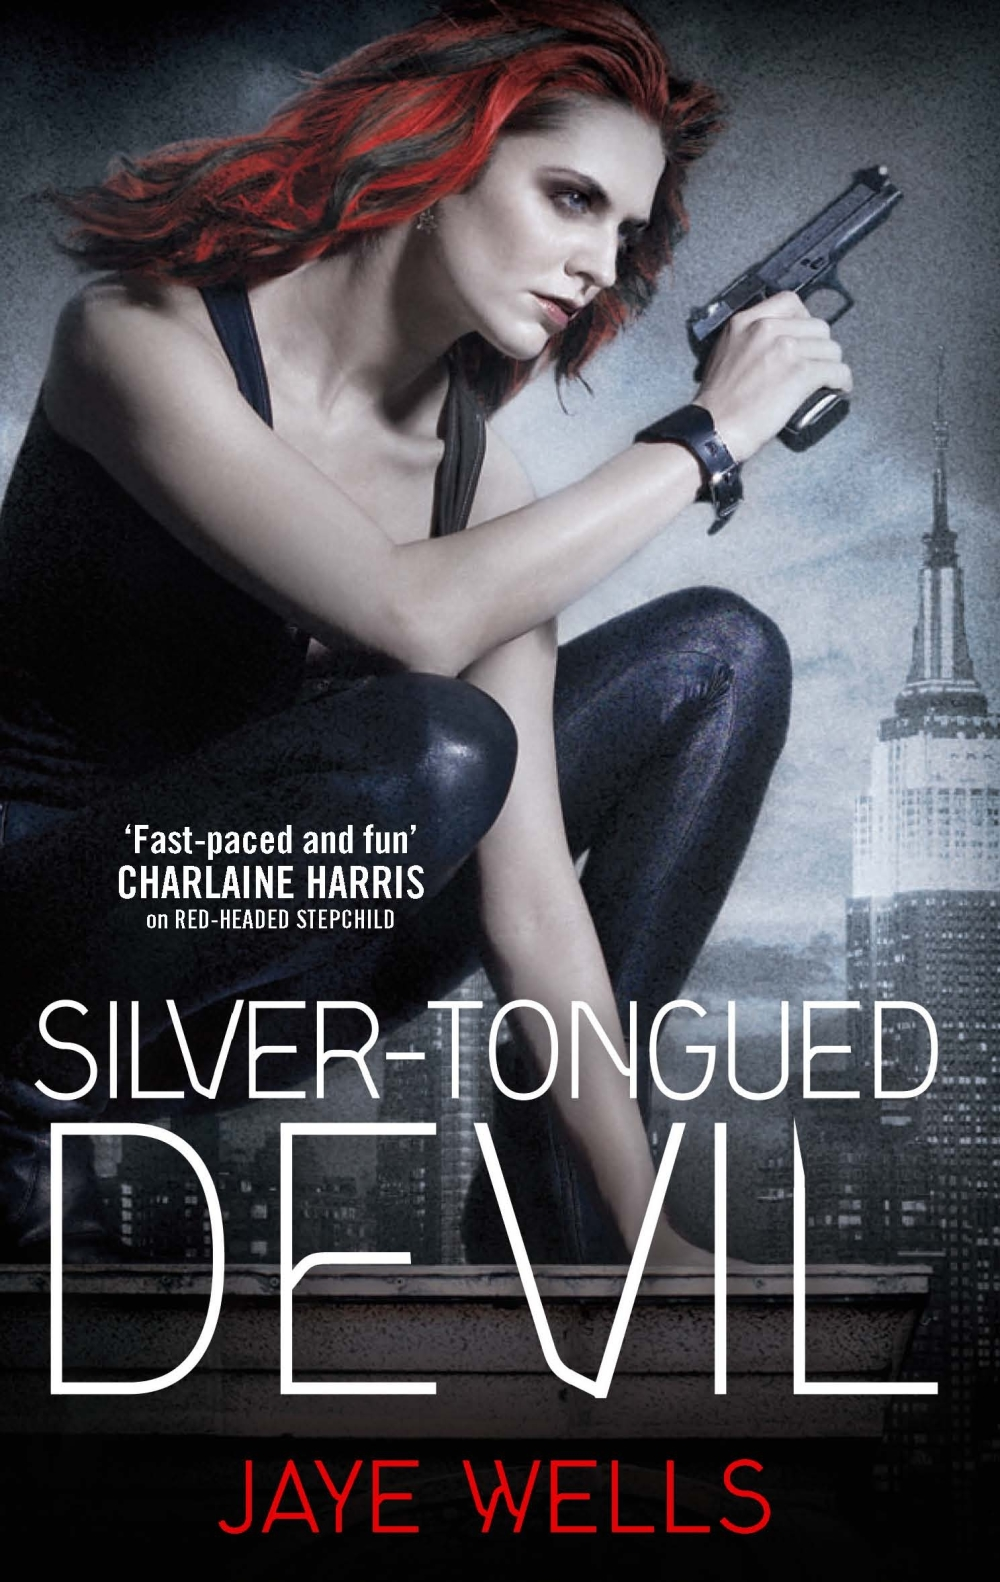 The cover to Jaye Wells' Silver-Tongued devil, showing a red-headed woman holding a gun